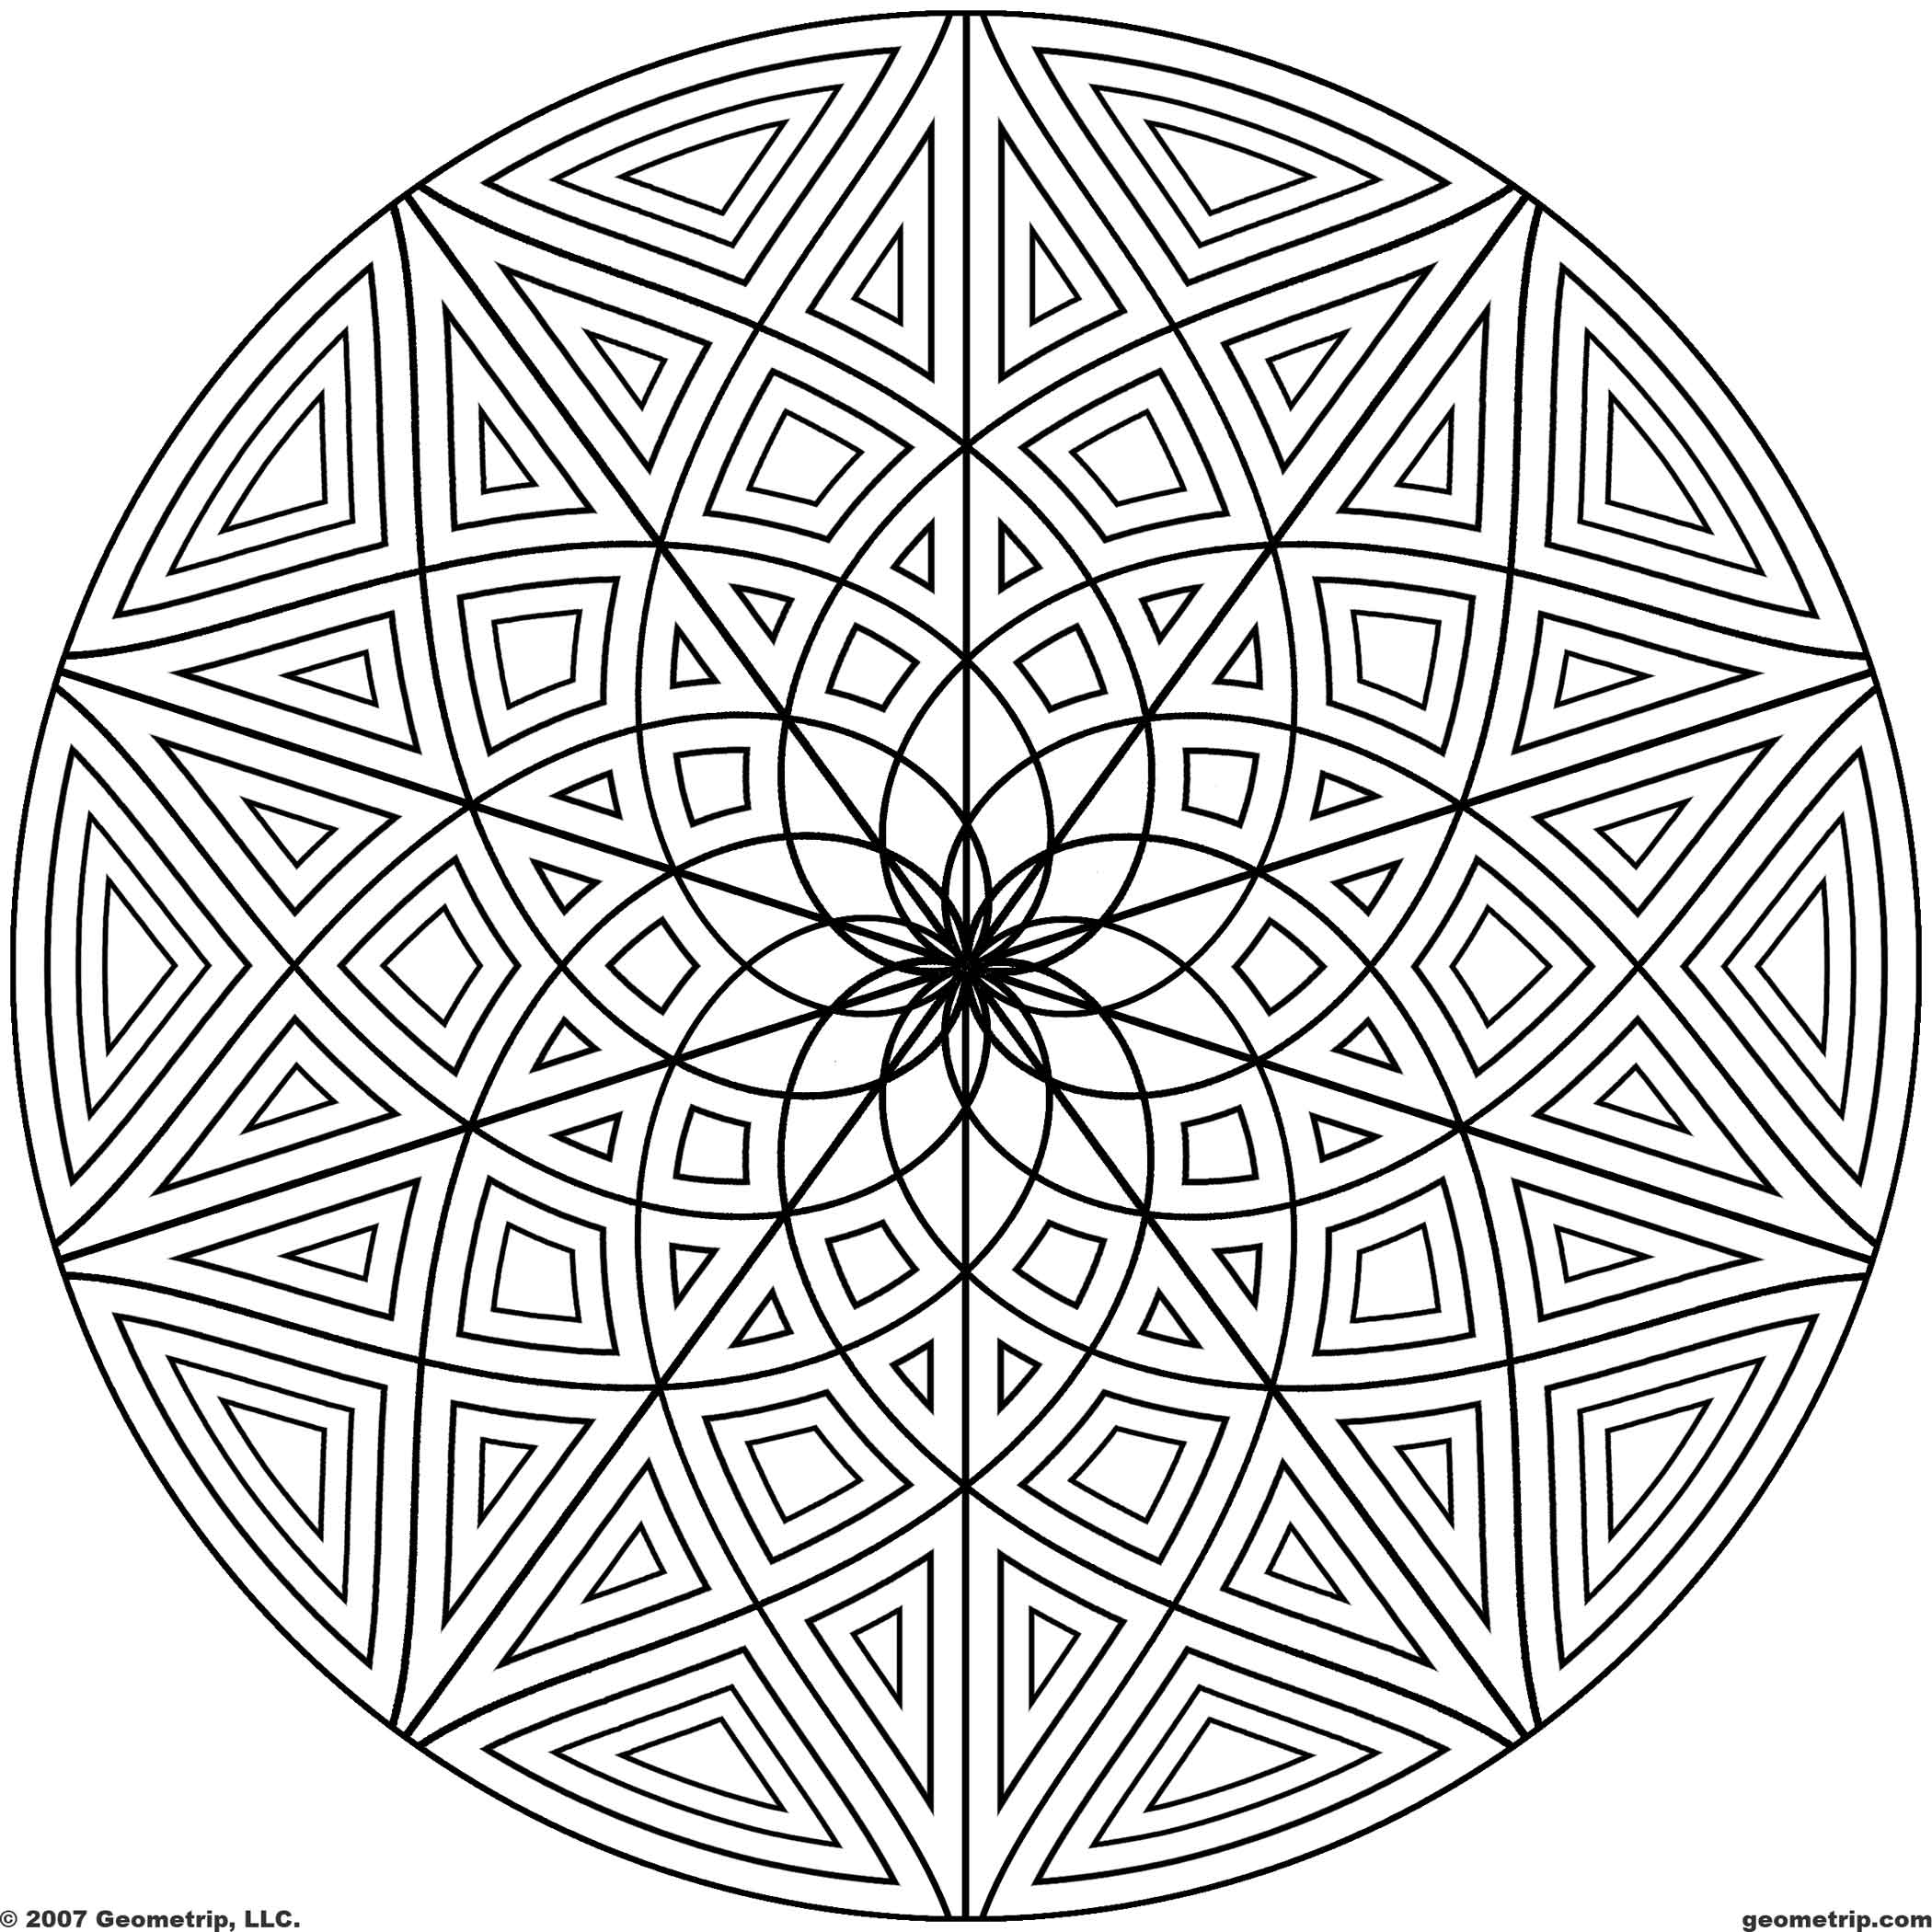 symmetry colouring sheets symmetry coloring pages doodle art alley sheets colouring symmetry